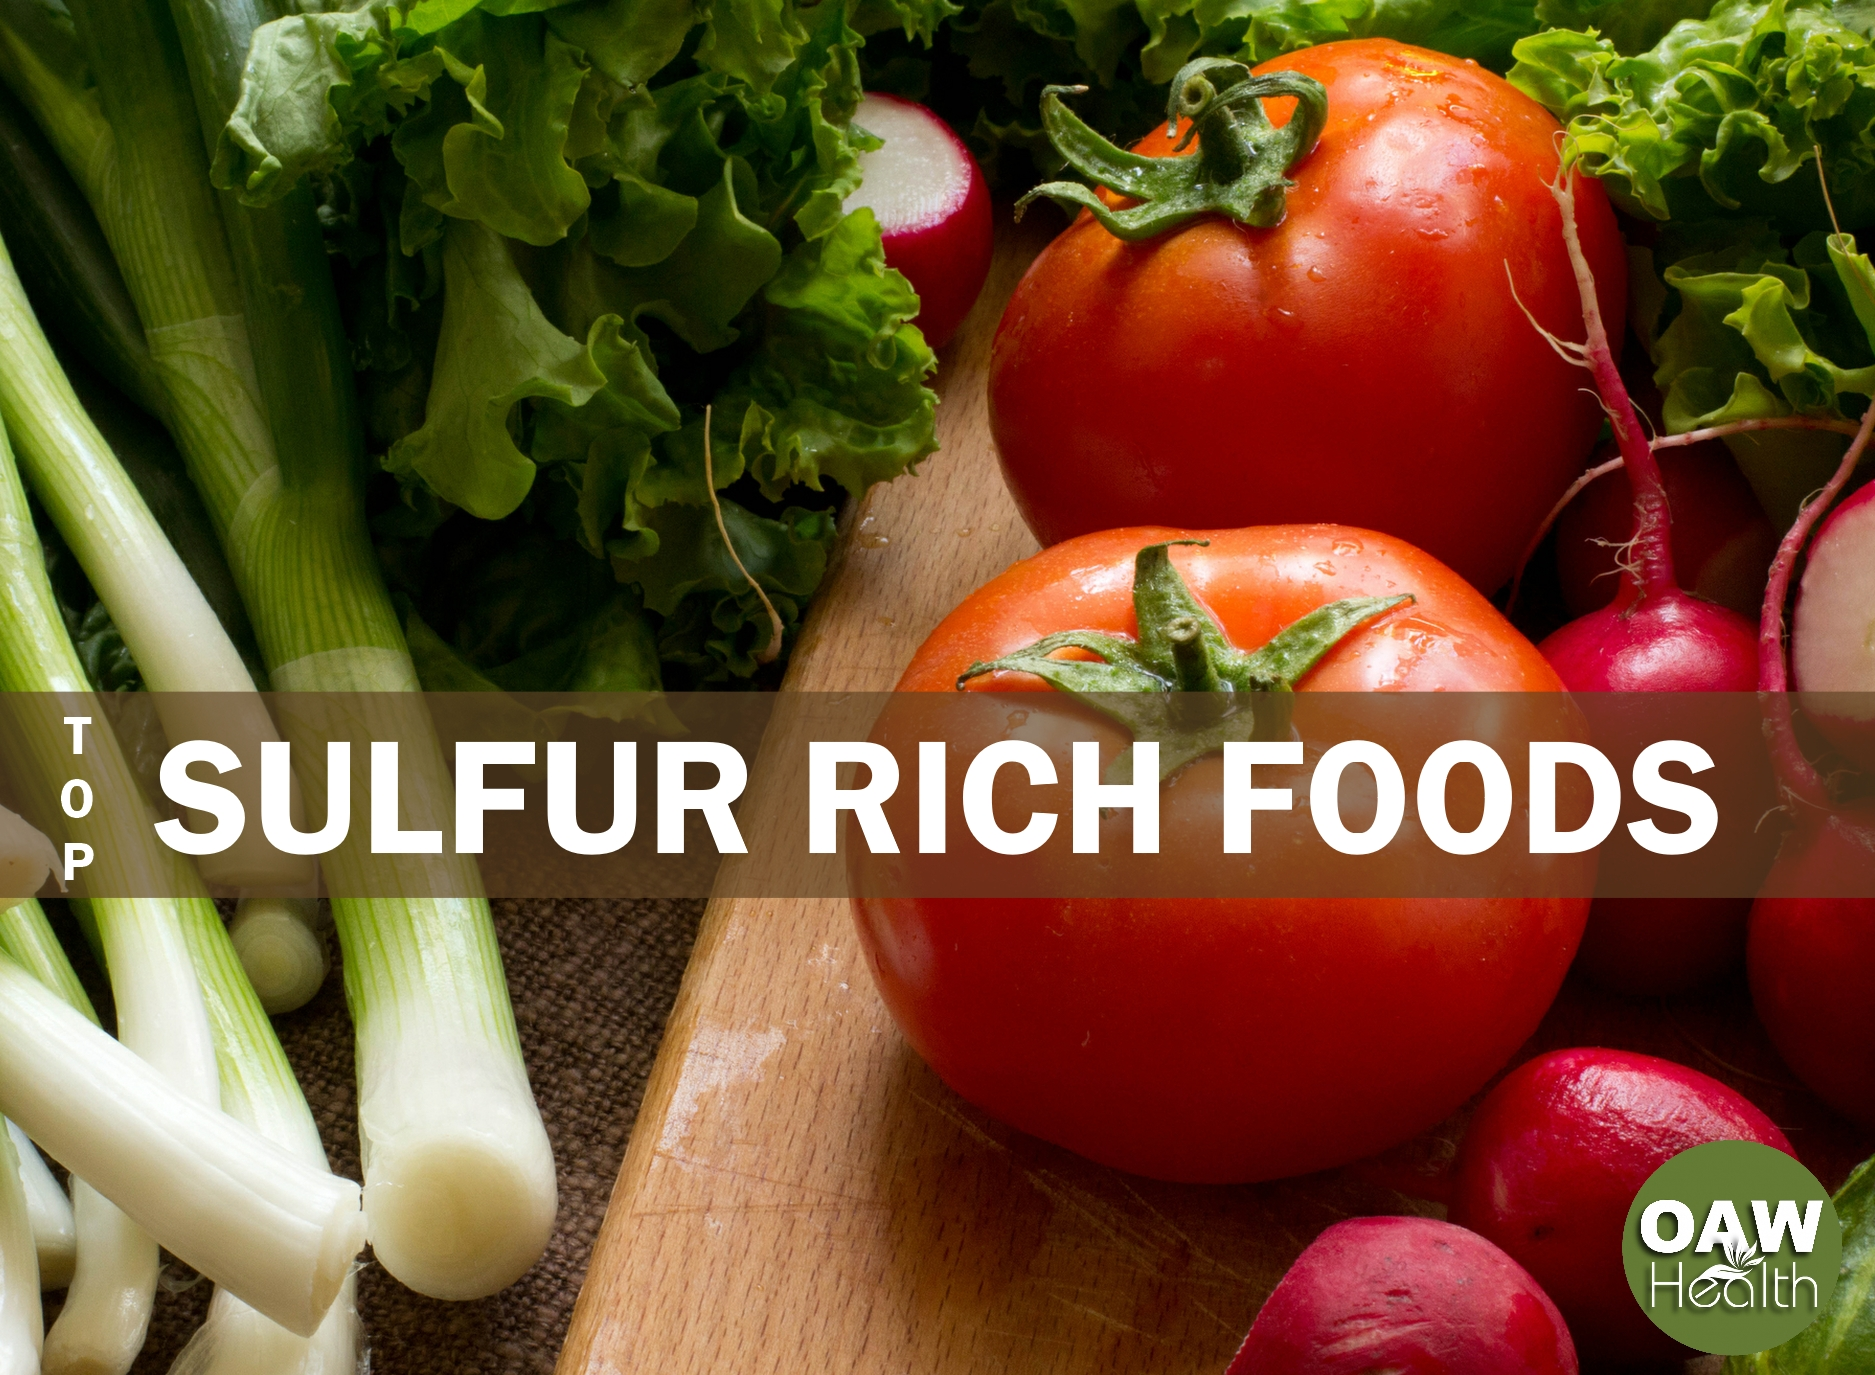 Top Sulfur Rich Foods